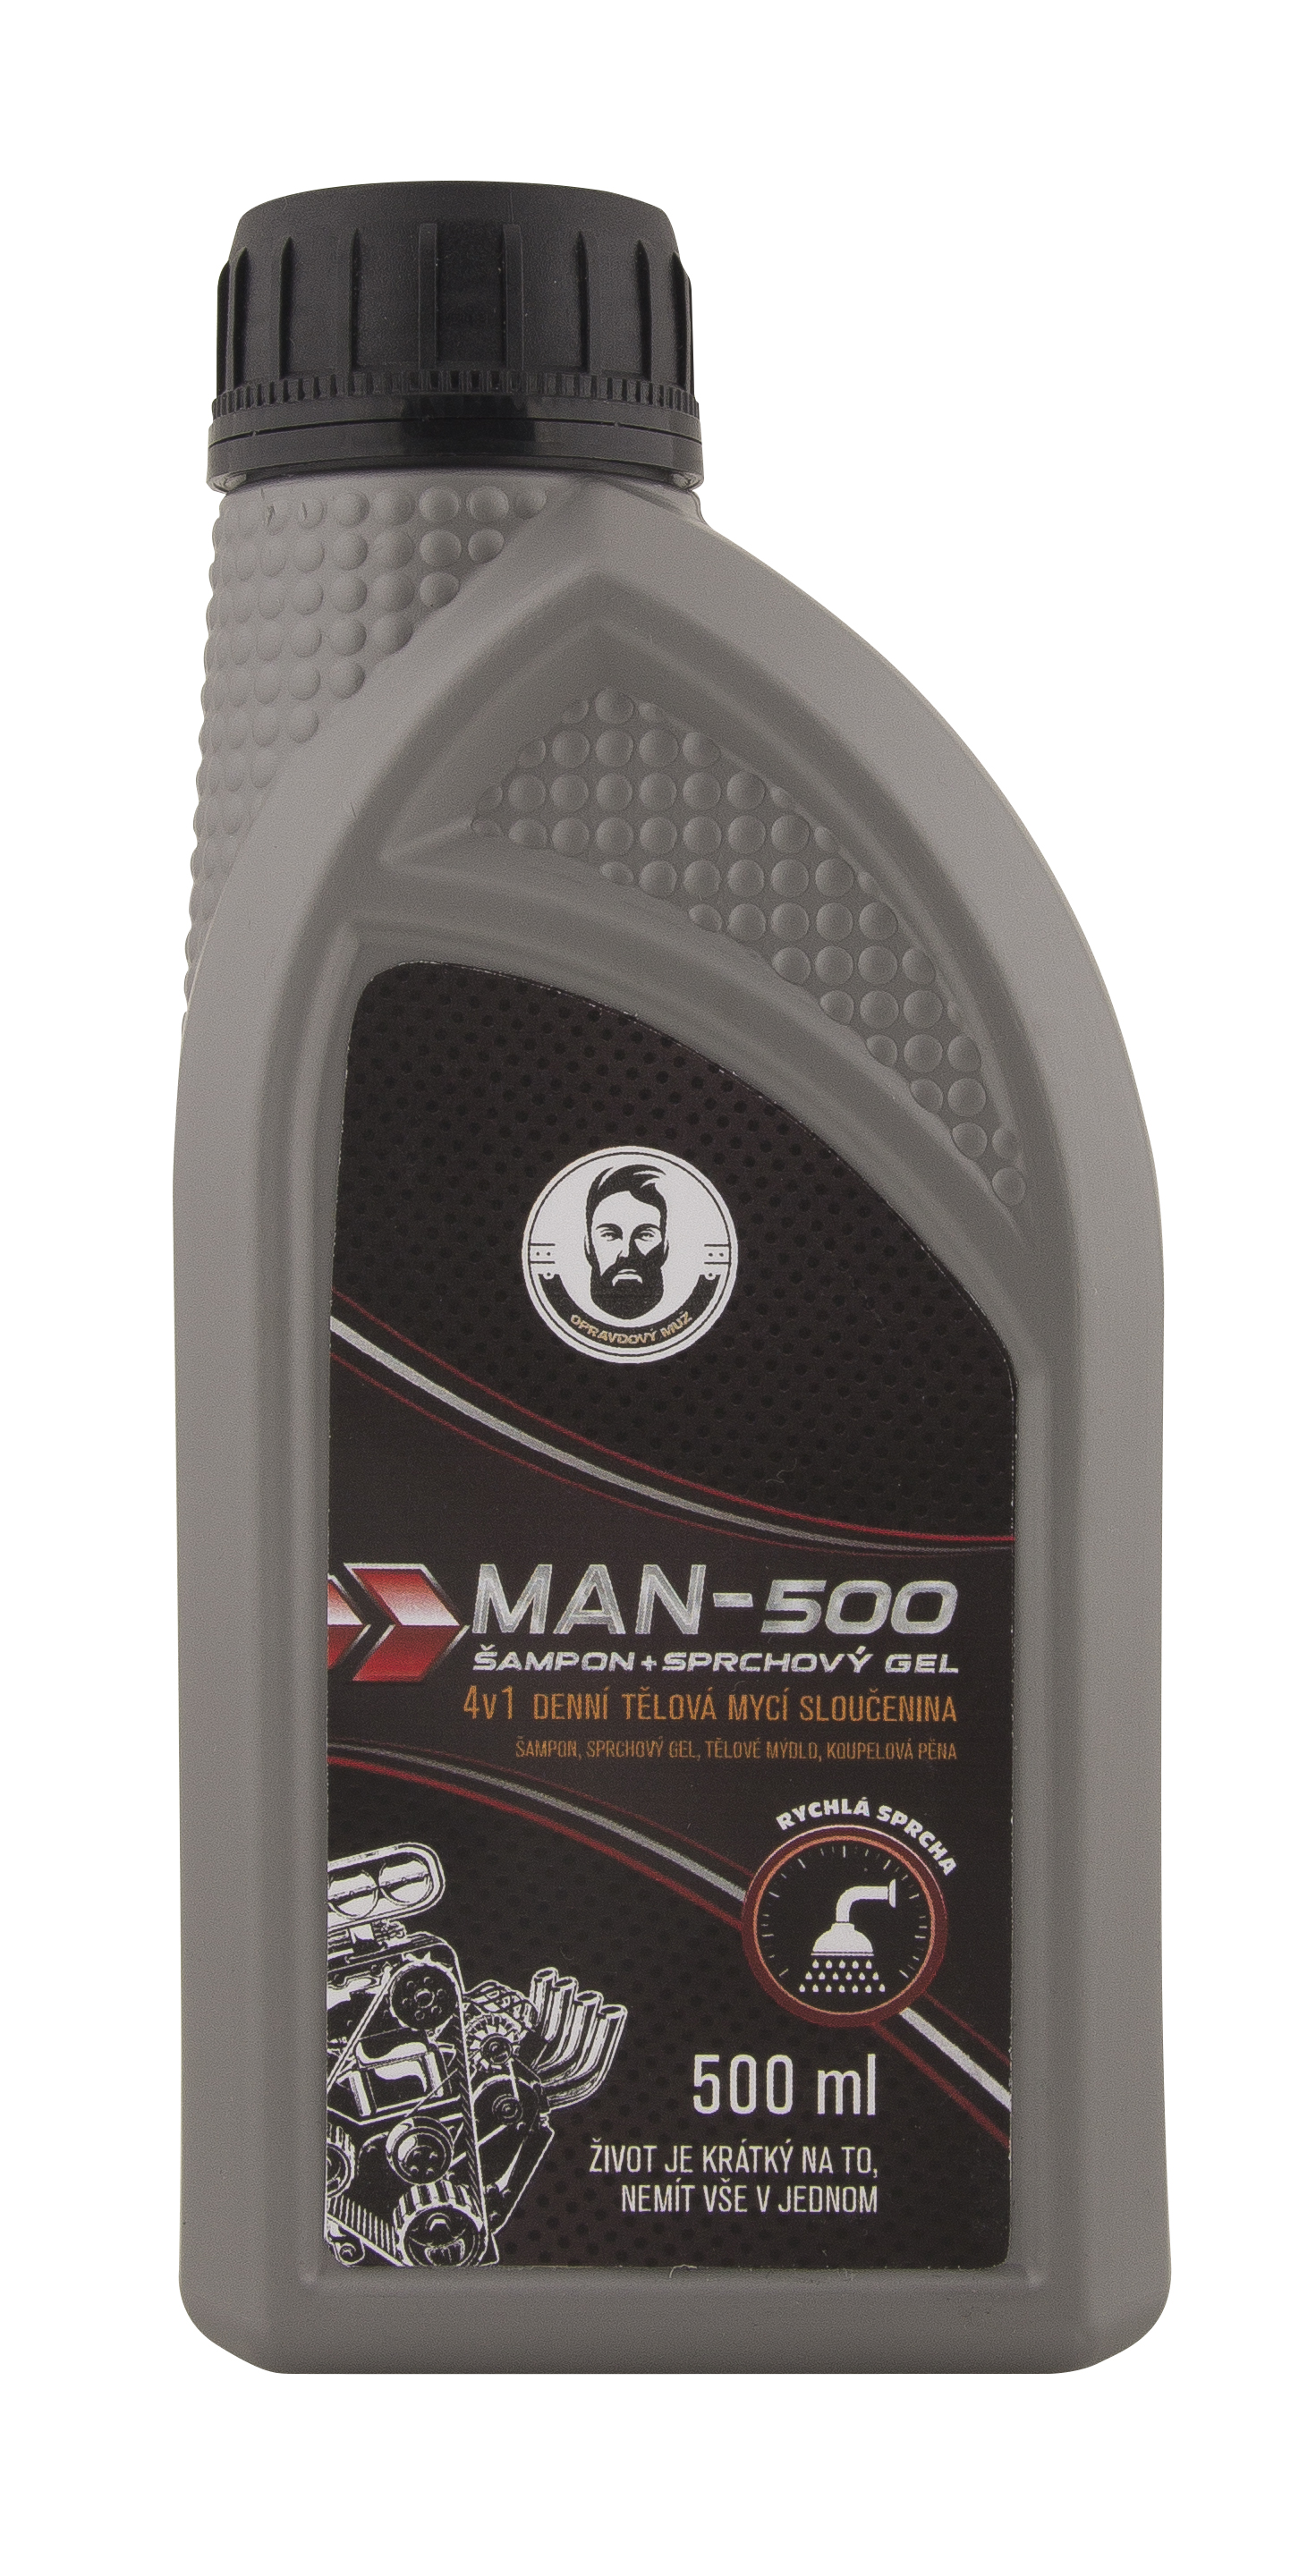 Sprchový gel Man-500 4v1 500ml